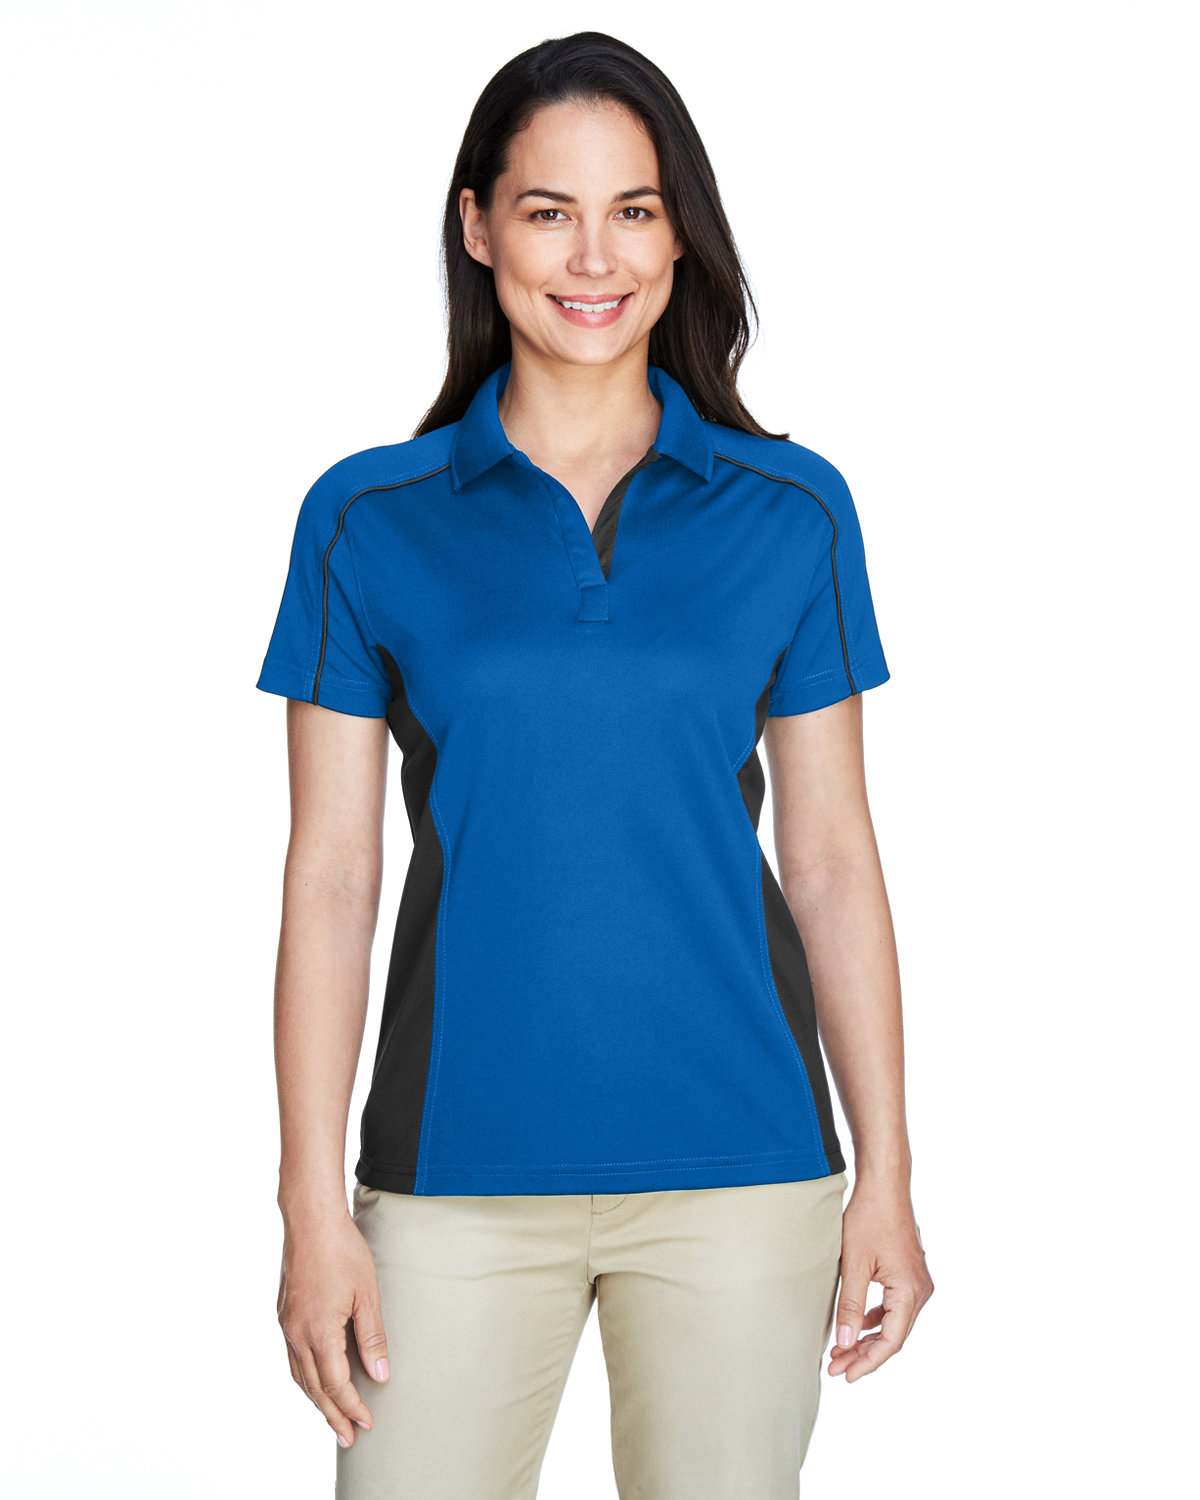 Extreme Ladies' Eperformance™ Fuse Snag Protection Plus Colorblock Polo TRUE ROYAL/ BLK